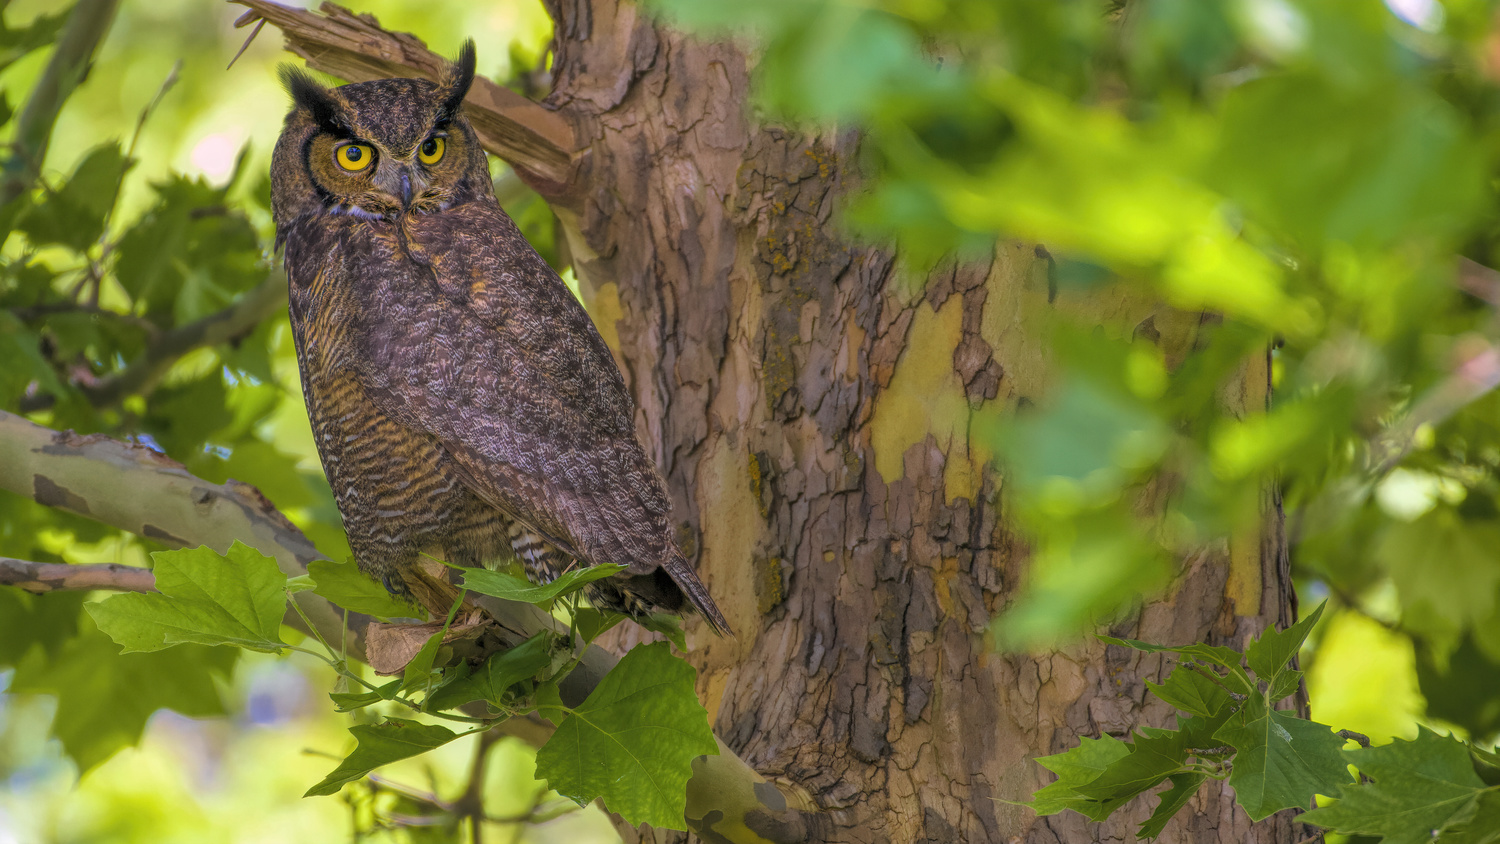 Great Horned Owl by David Hutson